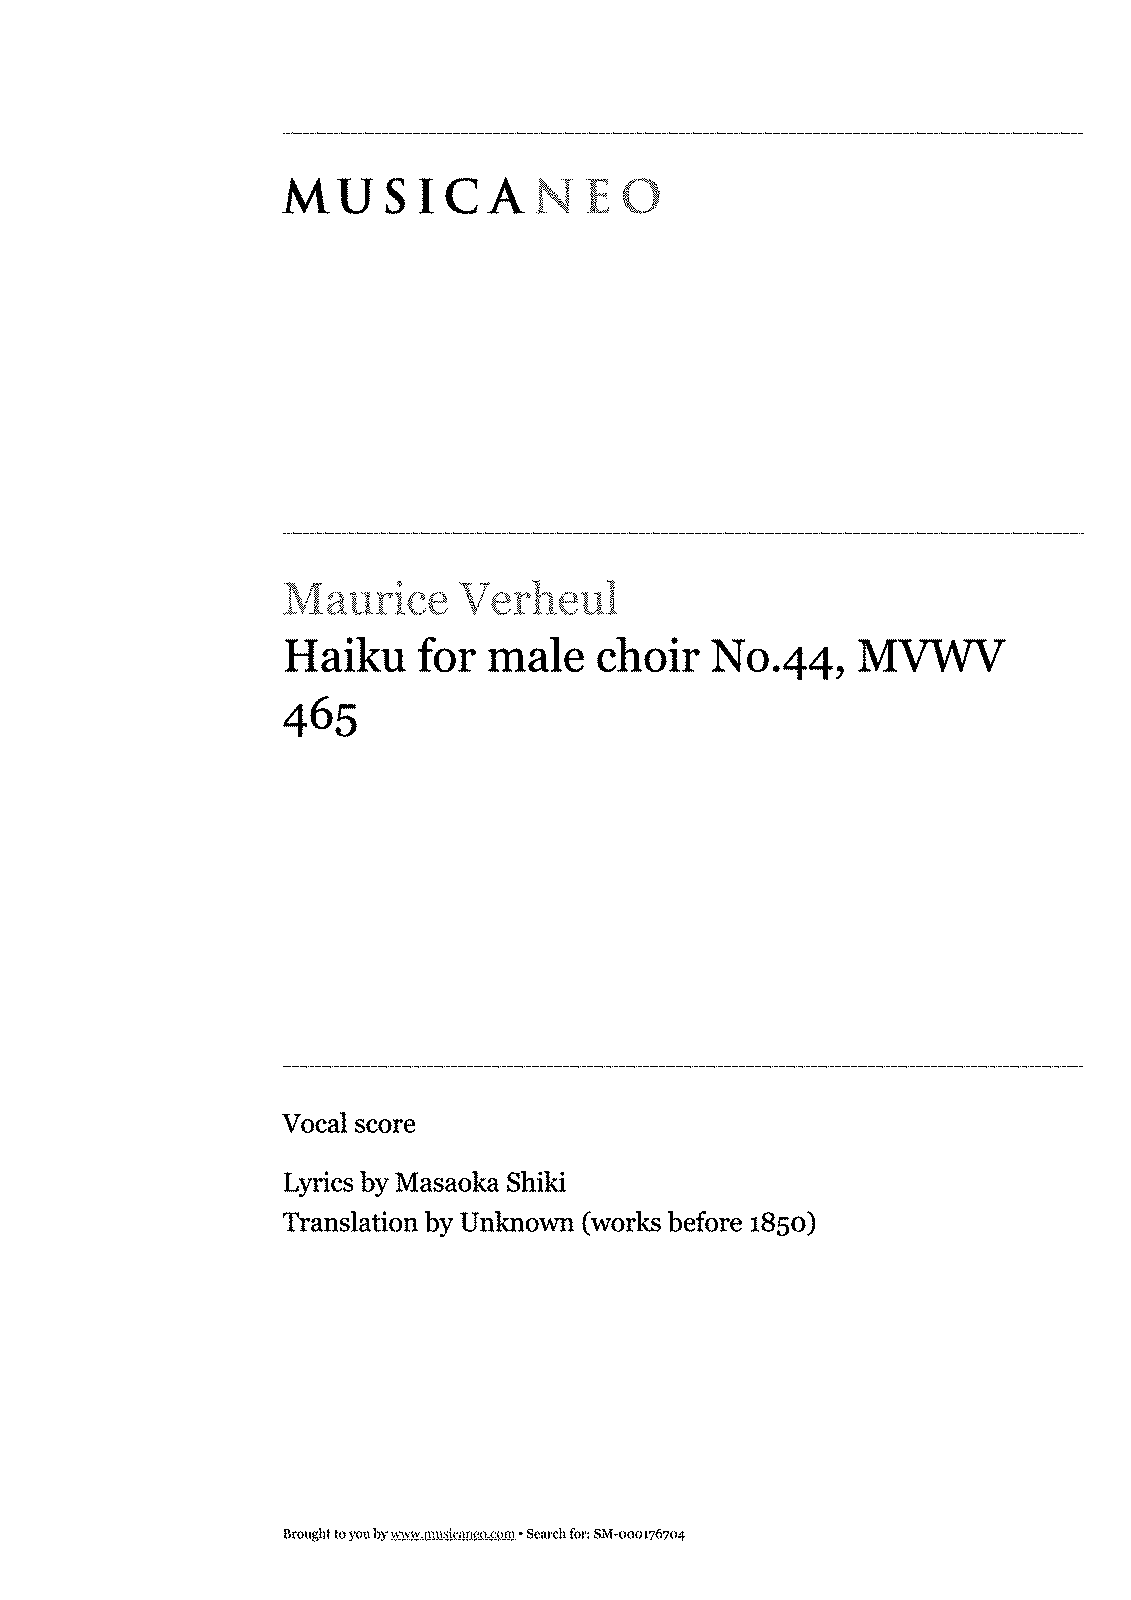 PMLP718995-haiku for male choir no 44 mvwv 465.pdf